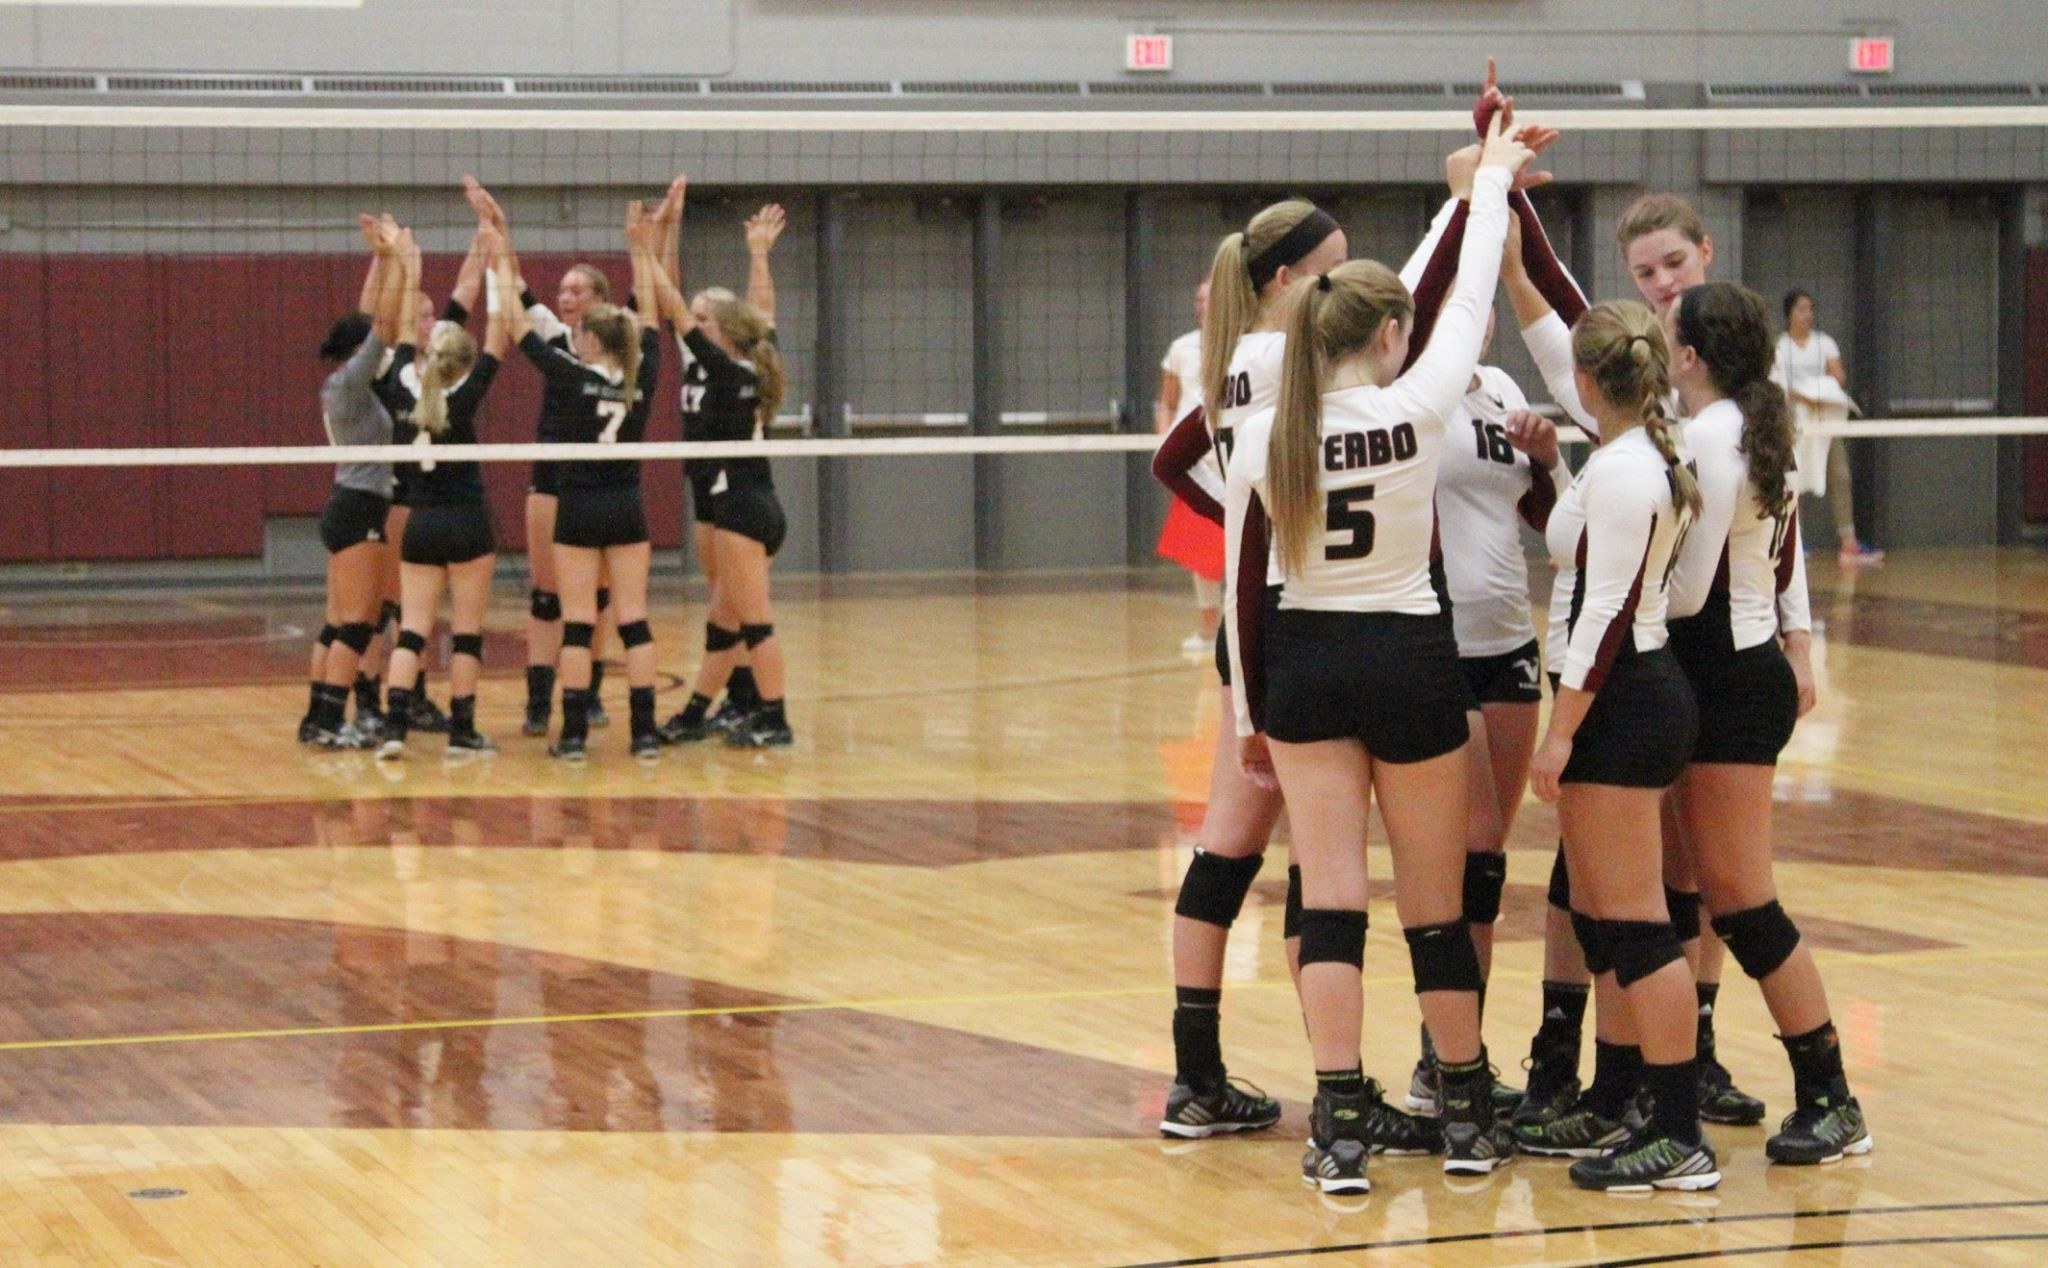 Viterbo, UW-L volleyball off to undefeated starts before intracity game Wednesday